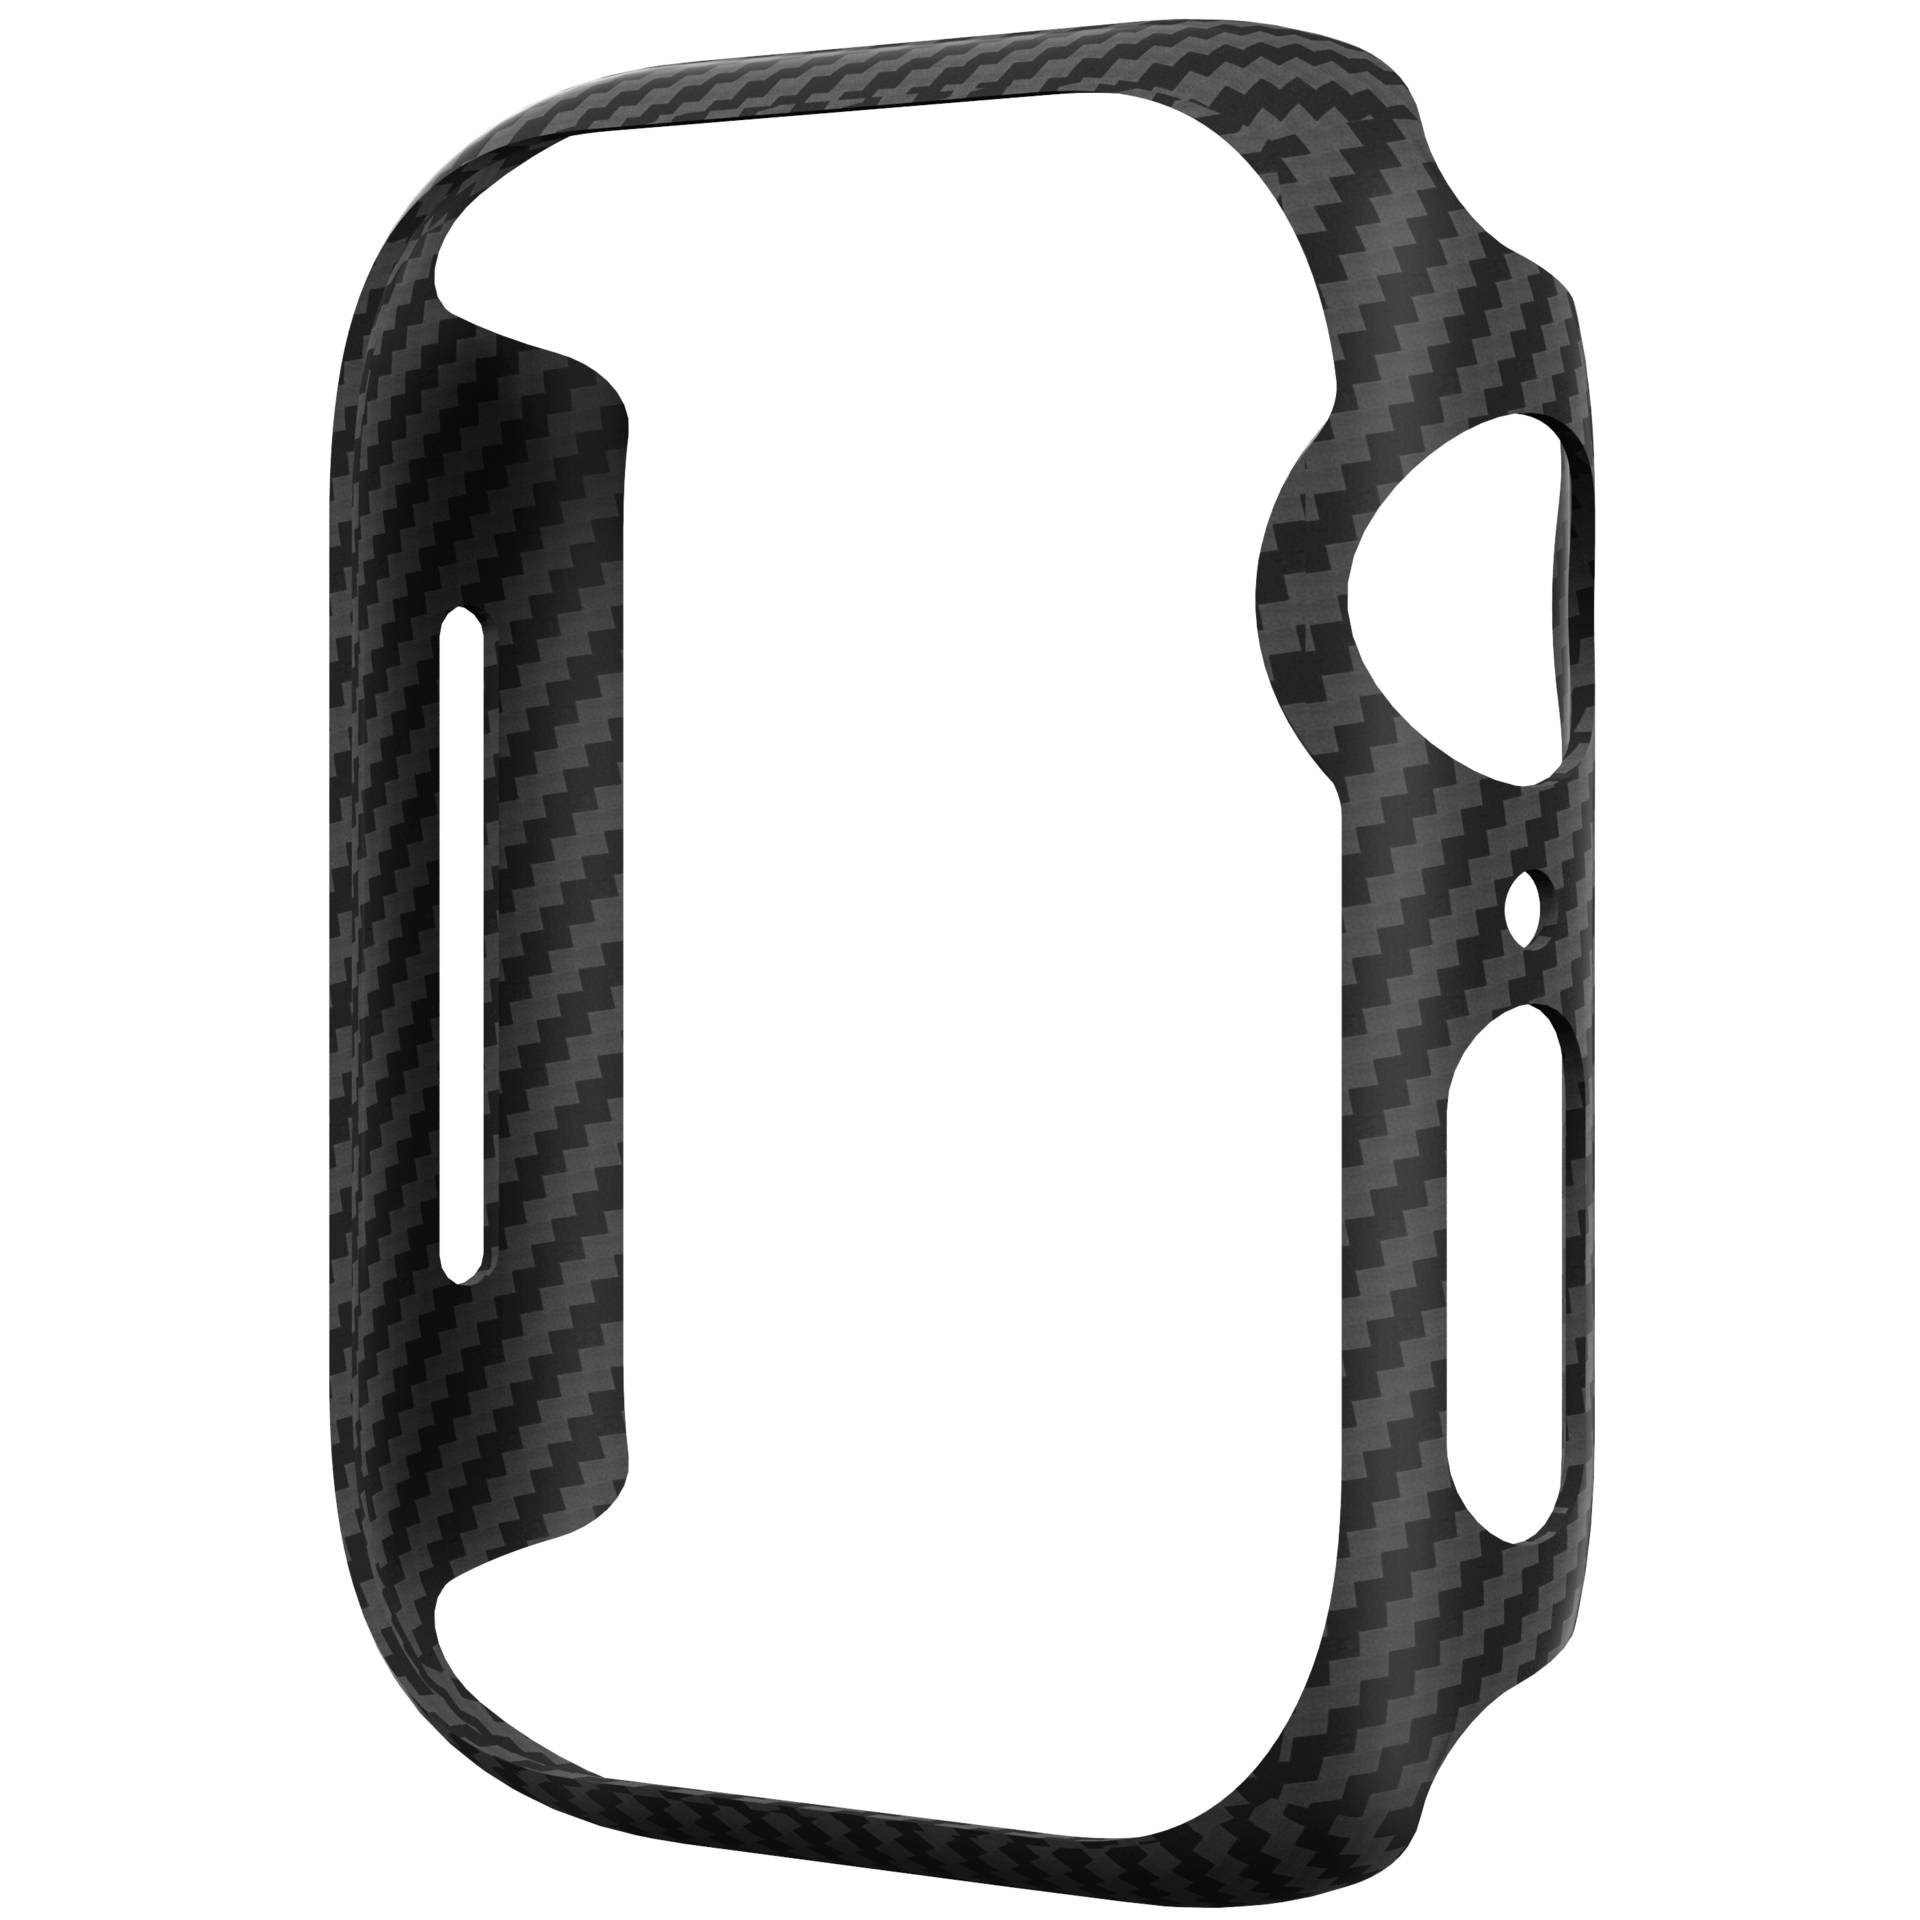 Pitaka Air Case for Apple Watch 4, 5 and 6 44mm